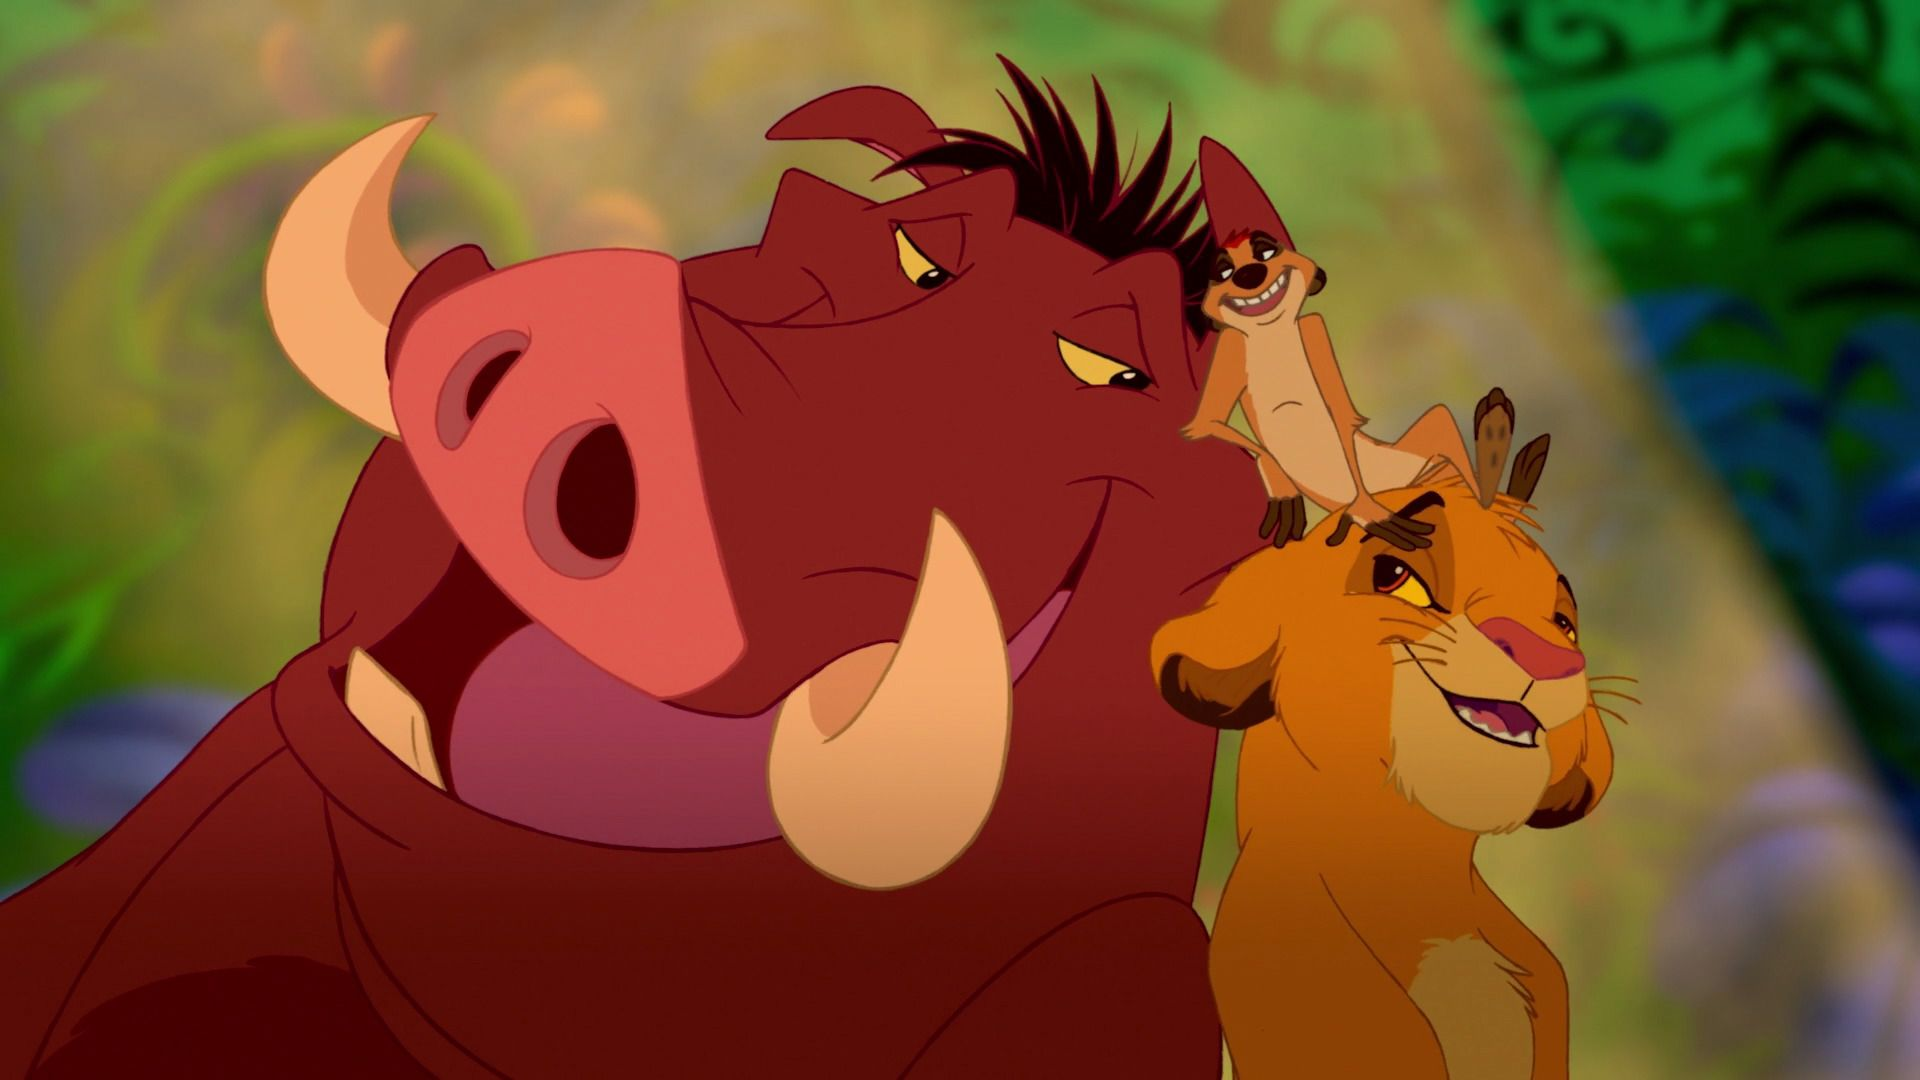 13+ What kind of animal is timon from lion king ideas in 2021